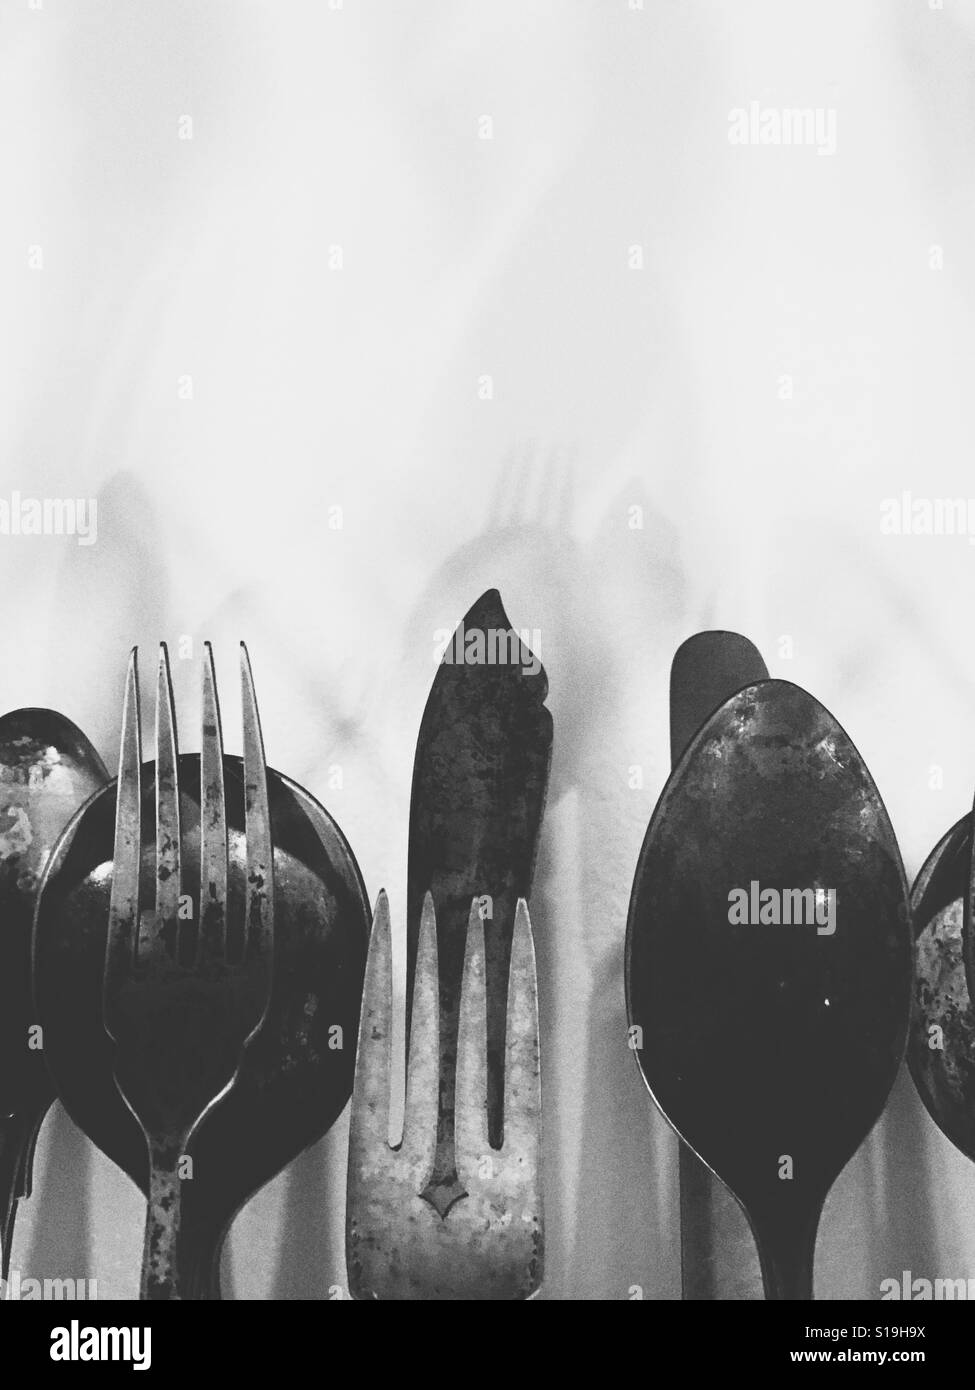 Knives, forks and spoons - Stock Image